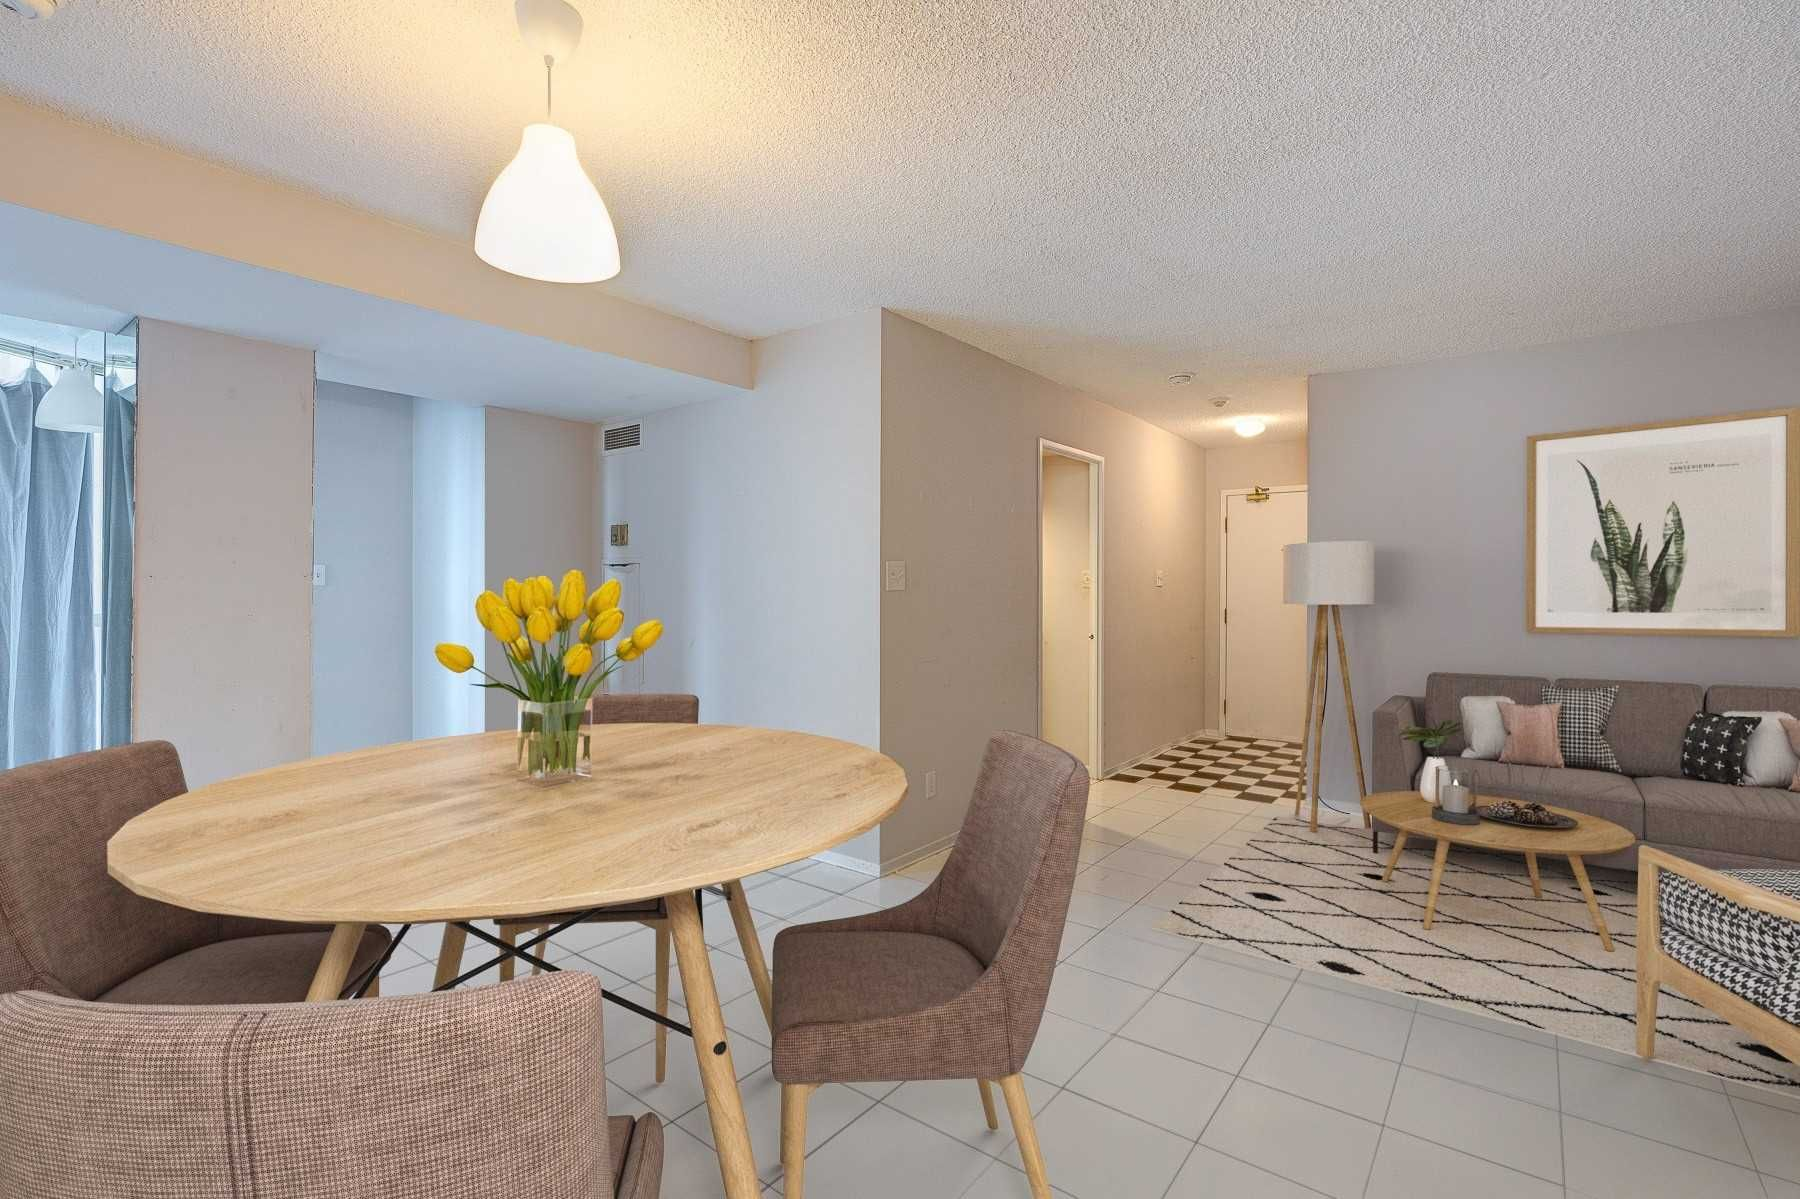 2550 Lawrence Ave E, unit 308 for sale in Toronto - image #1